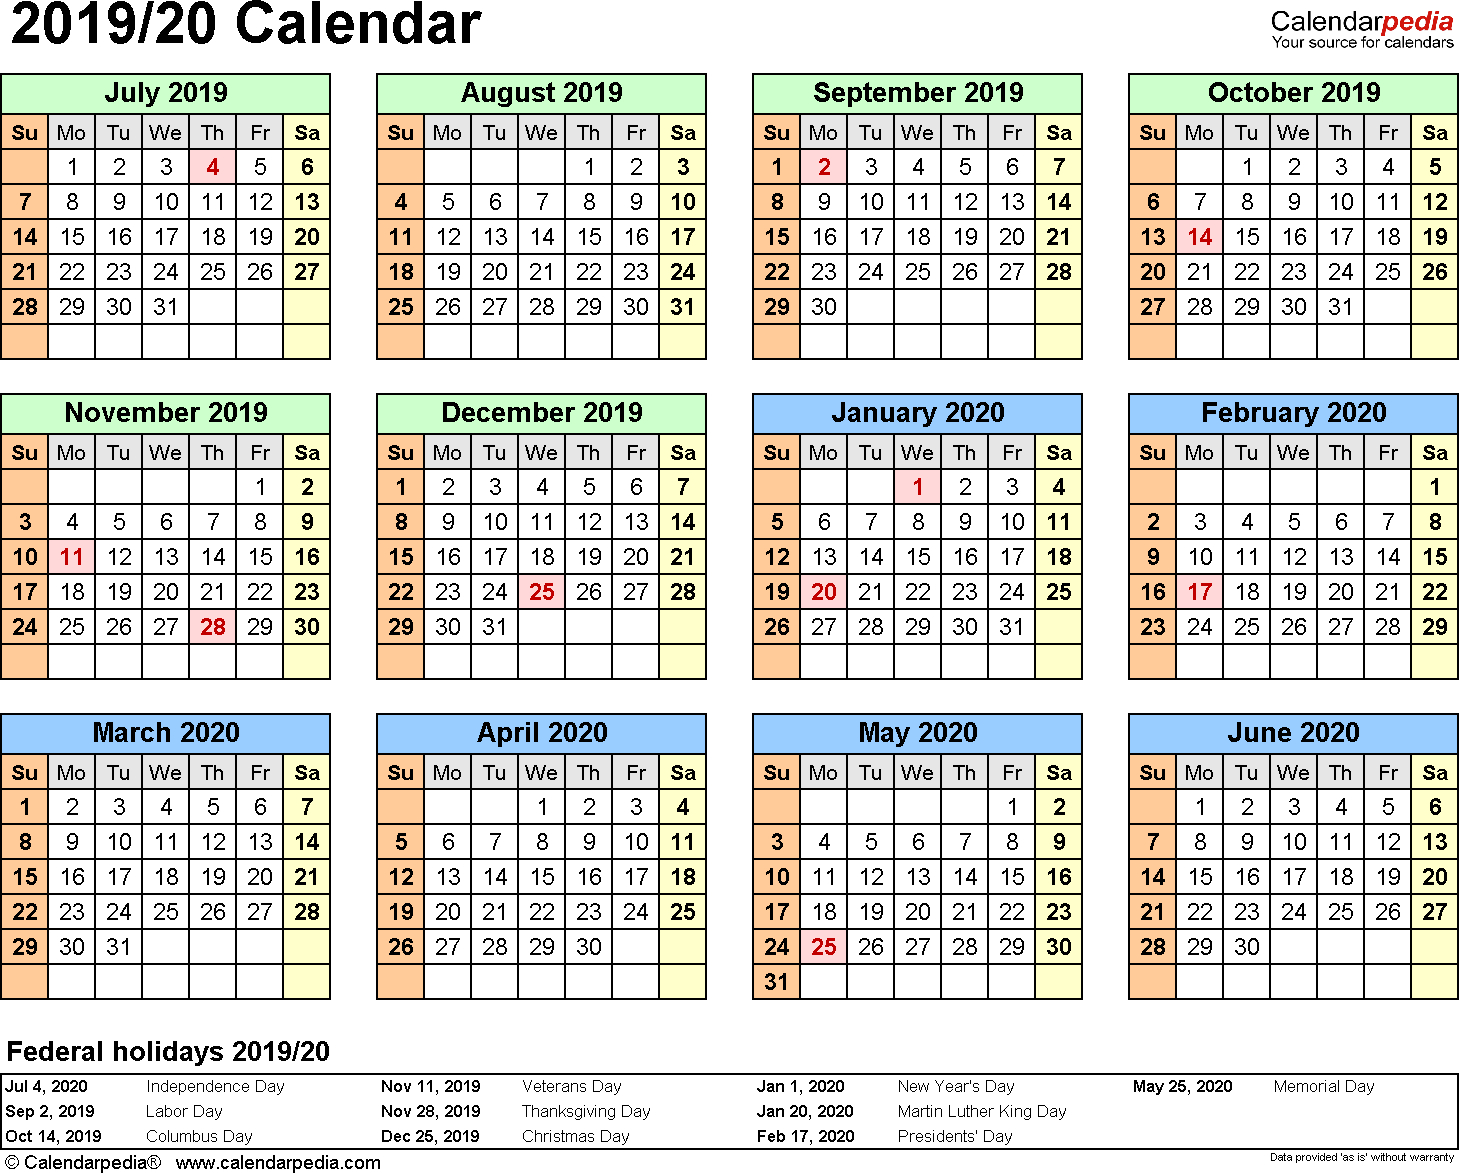 Split Year Calendar 2019/20 (July To June) - Word Templates for Year At A Glance Printable Calendar 2019/2020